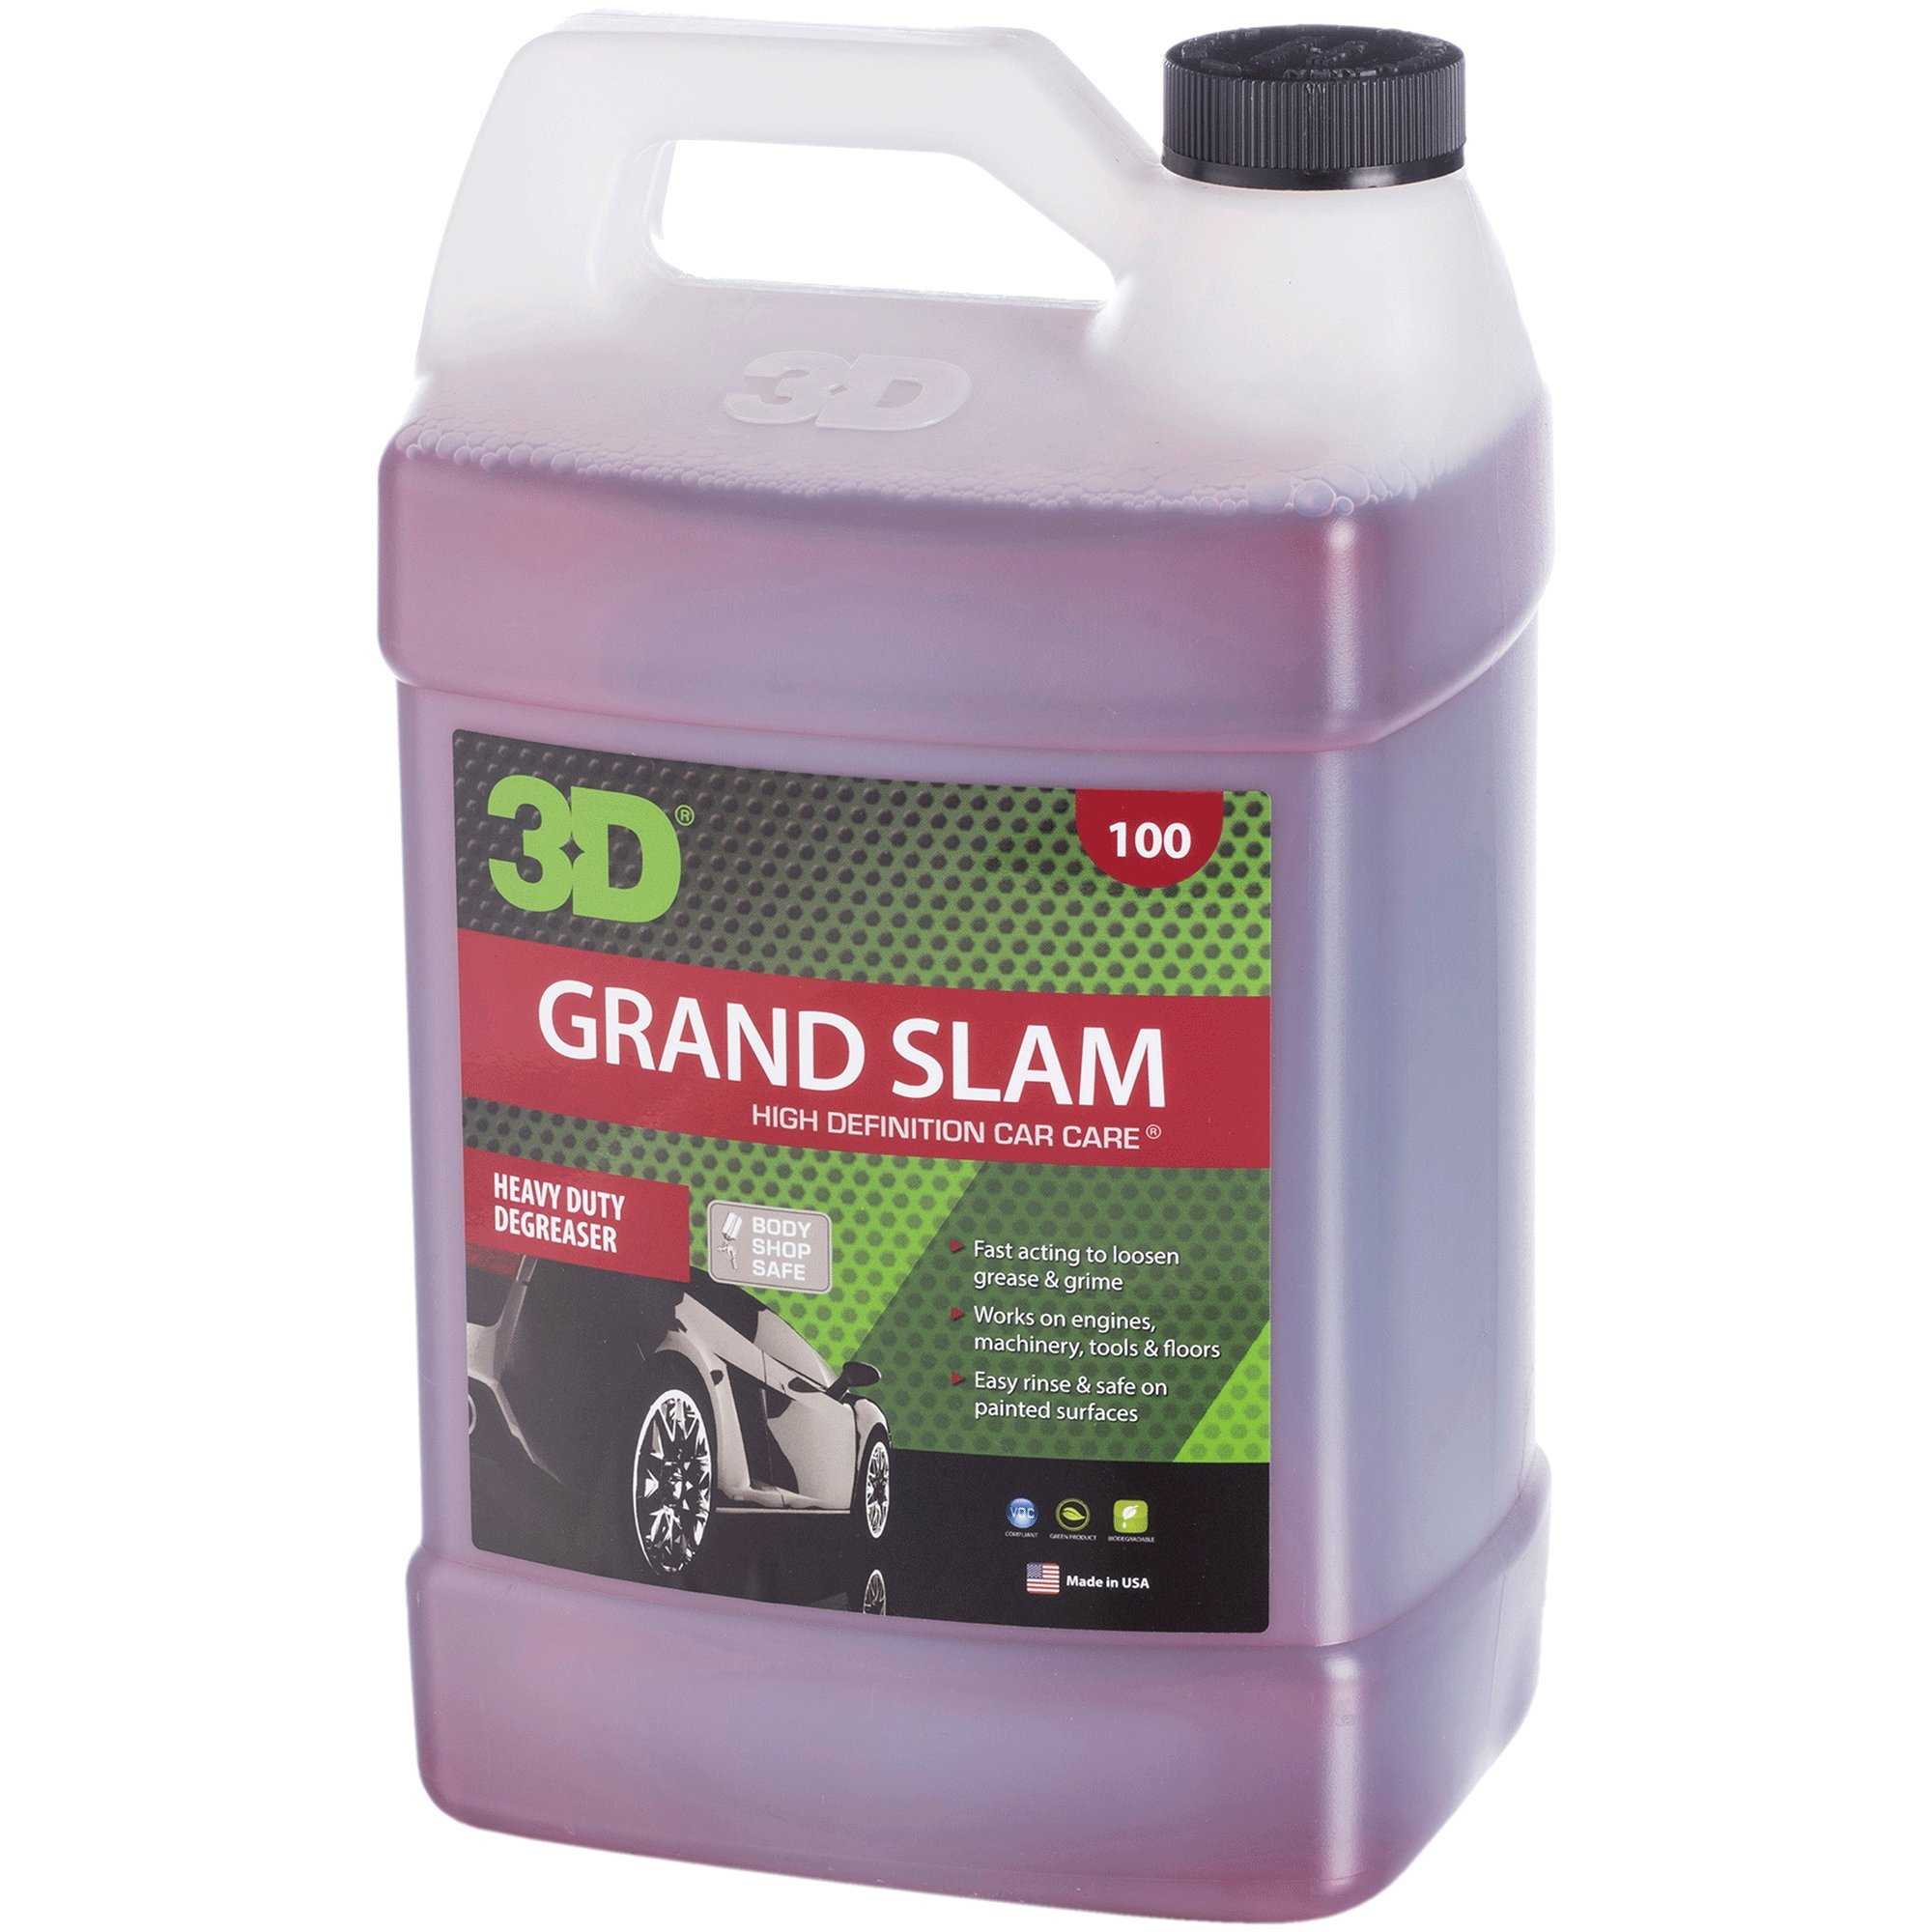 3D Grand Slam Engine Degreaser - 1 Gallon | Heavy Duty Industrial Cleaner & Degreaser | Removes Grease & Oil | Non Toxic & Biodegradable | Made in USA | All Natural | No Harmful Chemicals by 3D Auto Detailing Products